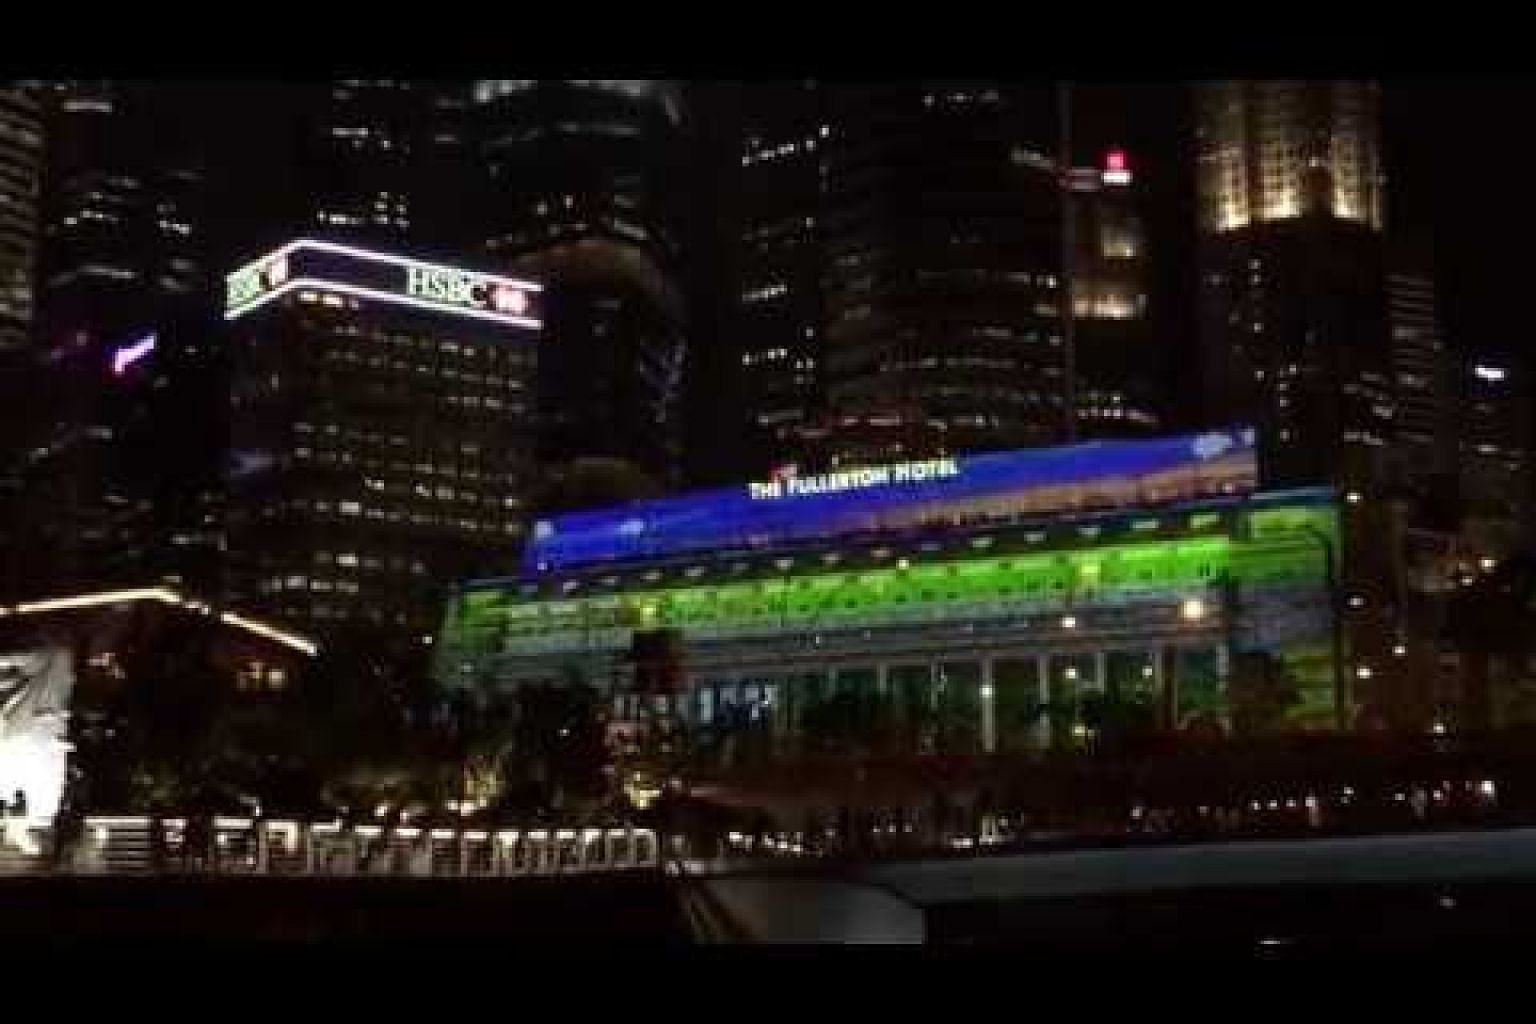 A light projection show on the facade of The Fullerton Hotel Singapore